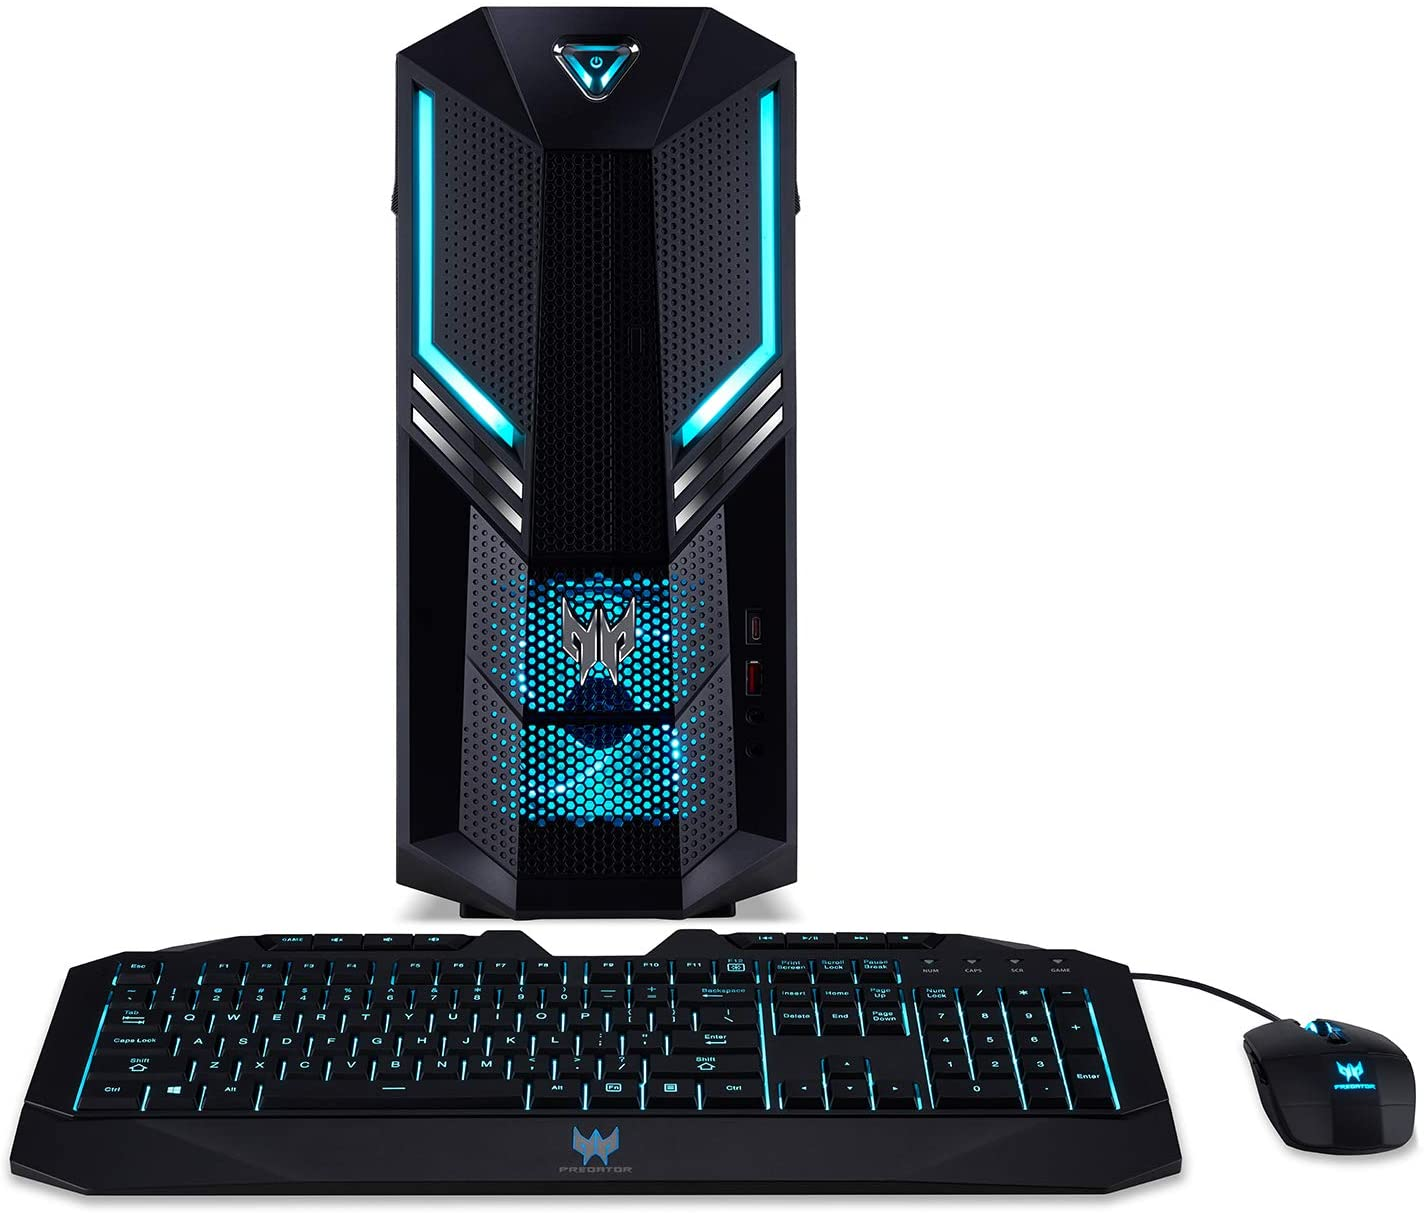 Acer Predator Orion 3000 PO3-600-UR13 Desktop, 8th Gen Intel Core i7-8700, GeForce GTX 1060, 16GB DDR4, 256GB PCIe NVMe SSD, 1TB HDD, Win 10